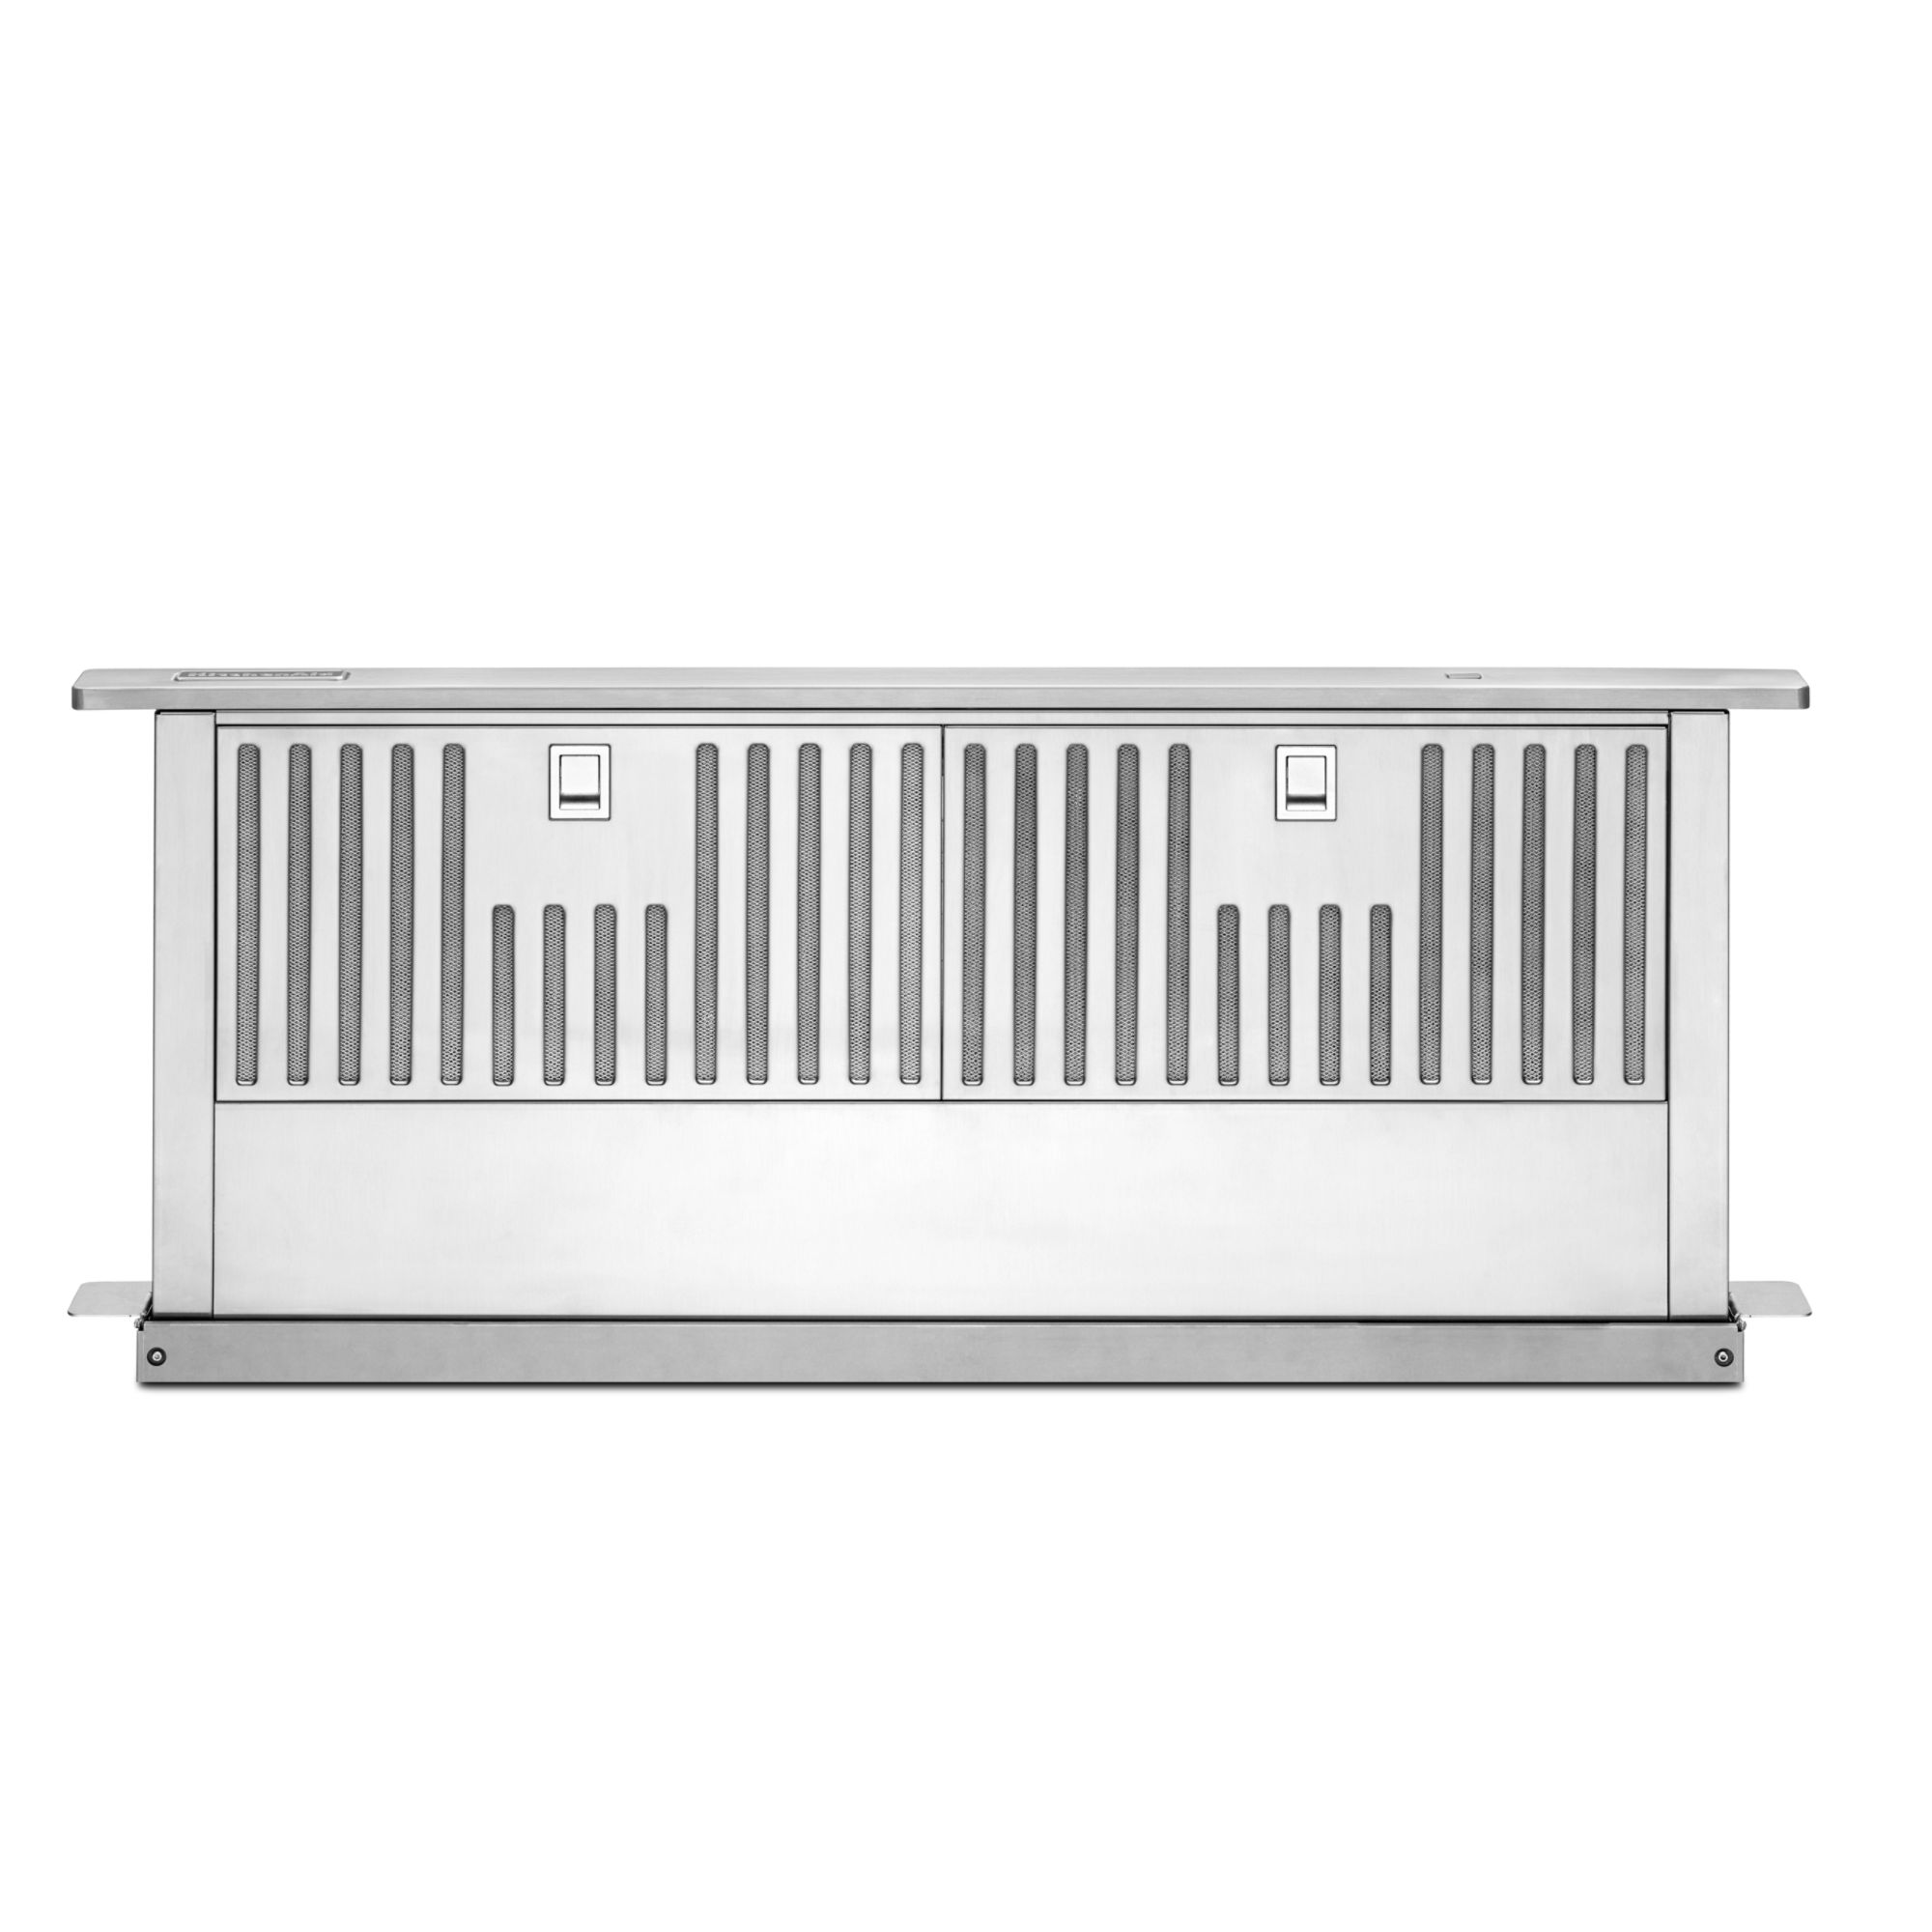 "KitchenAid KXD4636YSS 36"" Specialty Series Stainless Steel Retractable Downdraft Vent Hood"